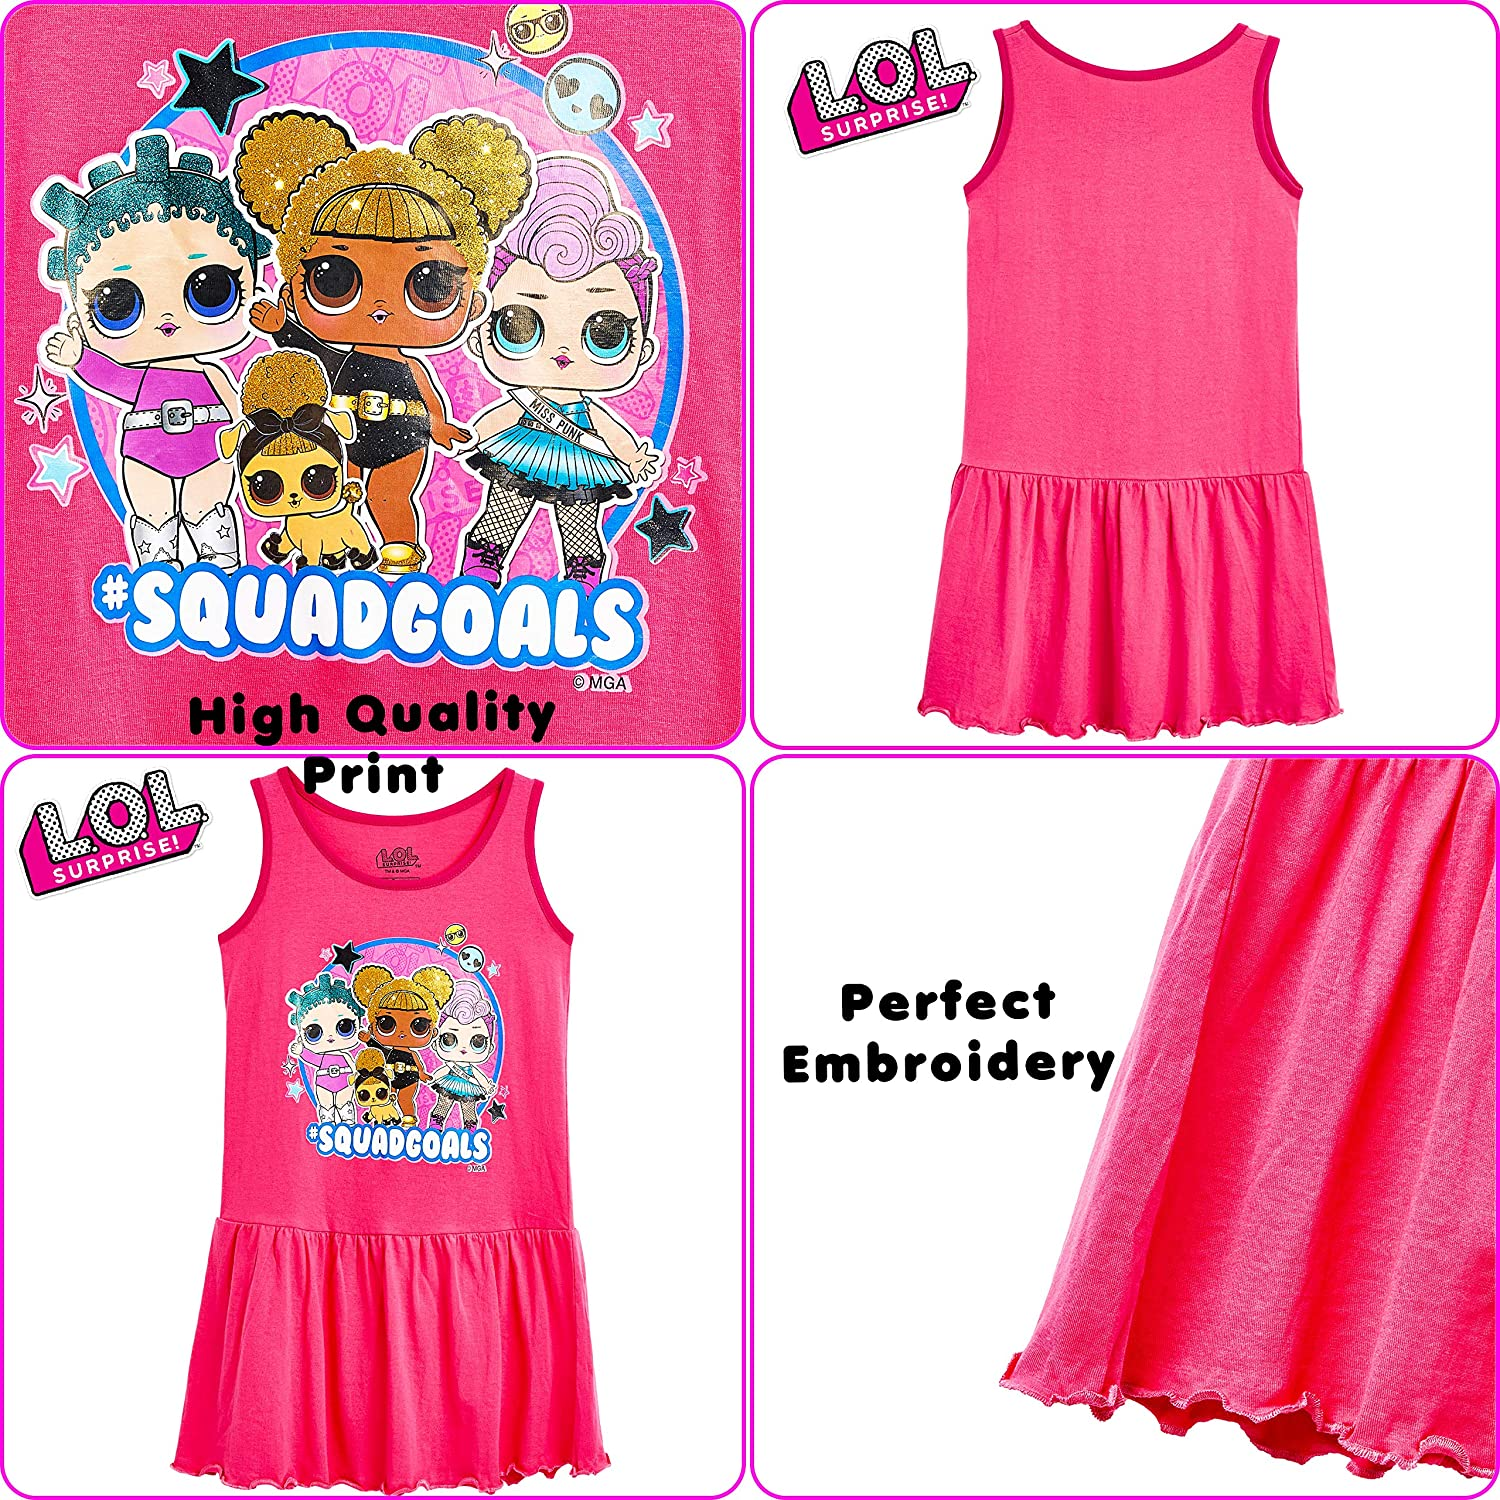 Sleeveless Pink Girls Dress 100/% Cotton Confetti Pop Toddler Children Summer Clothes L.O.L LOL Dolls Dress for Girls Surprise Gift for 4 5 6 7 8 9 10 11 12 Year Old Girl